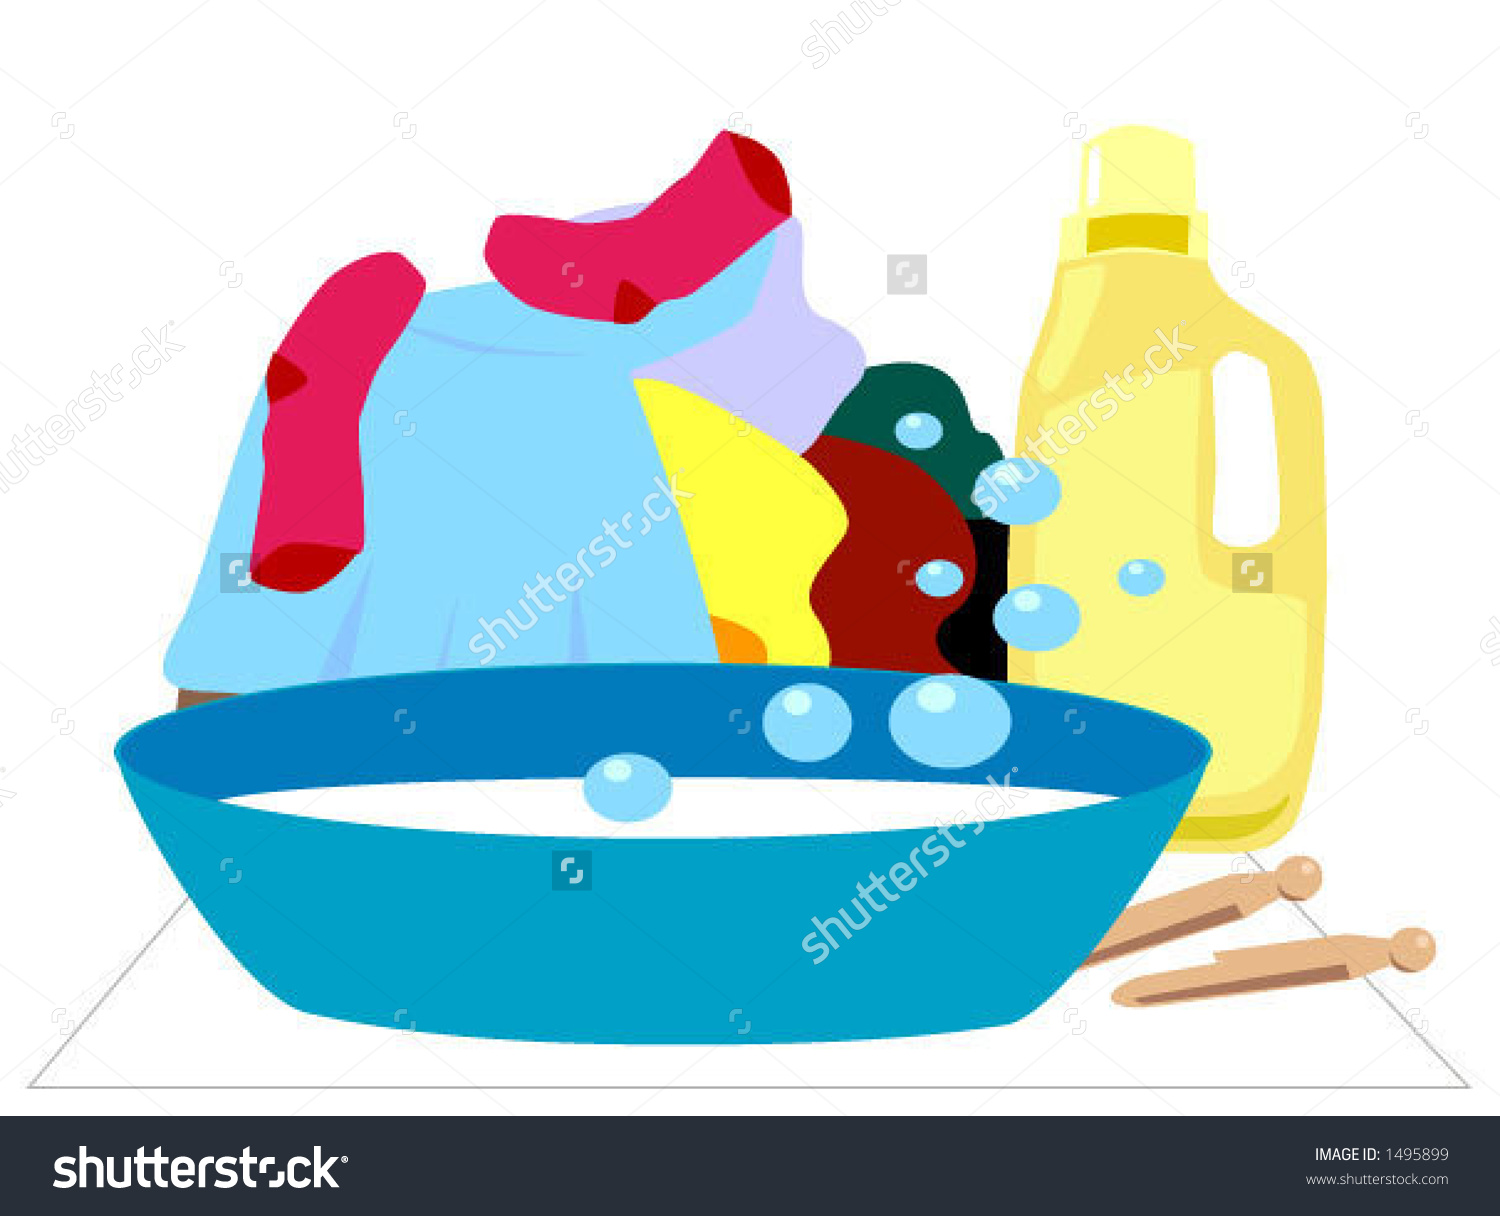 Washing clothes by hand clipart image free library Laundry Hand Washing Separate Items Vector Stock Vector 1495899 ... image free library